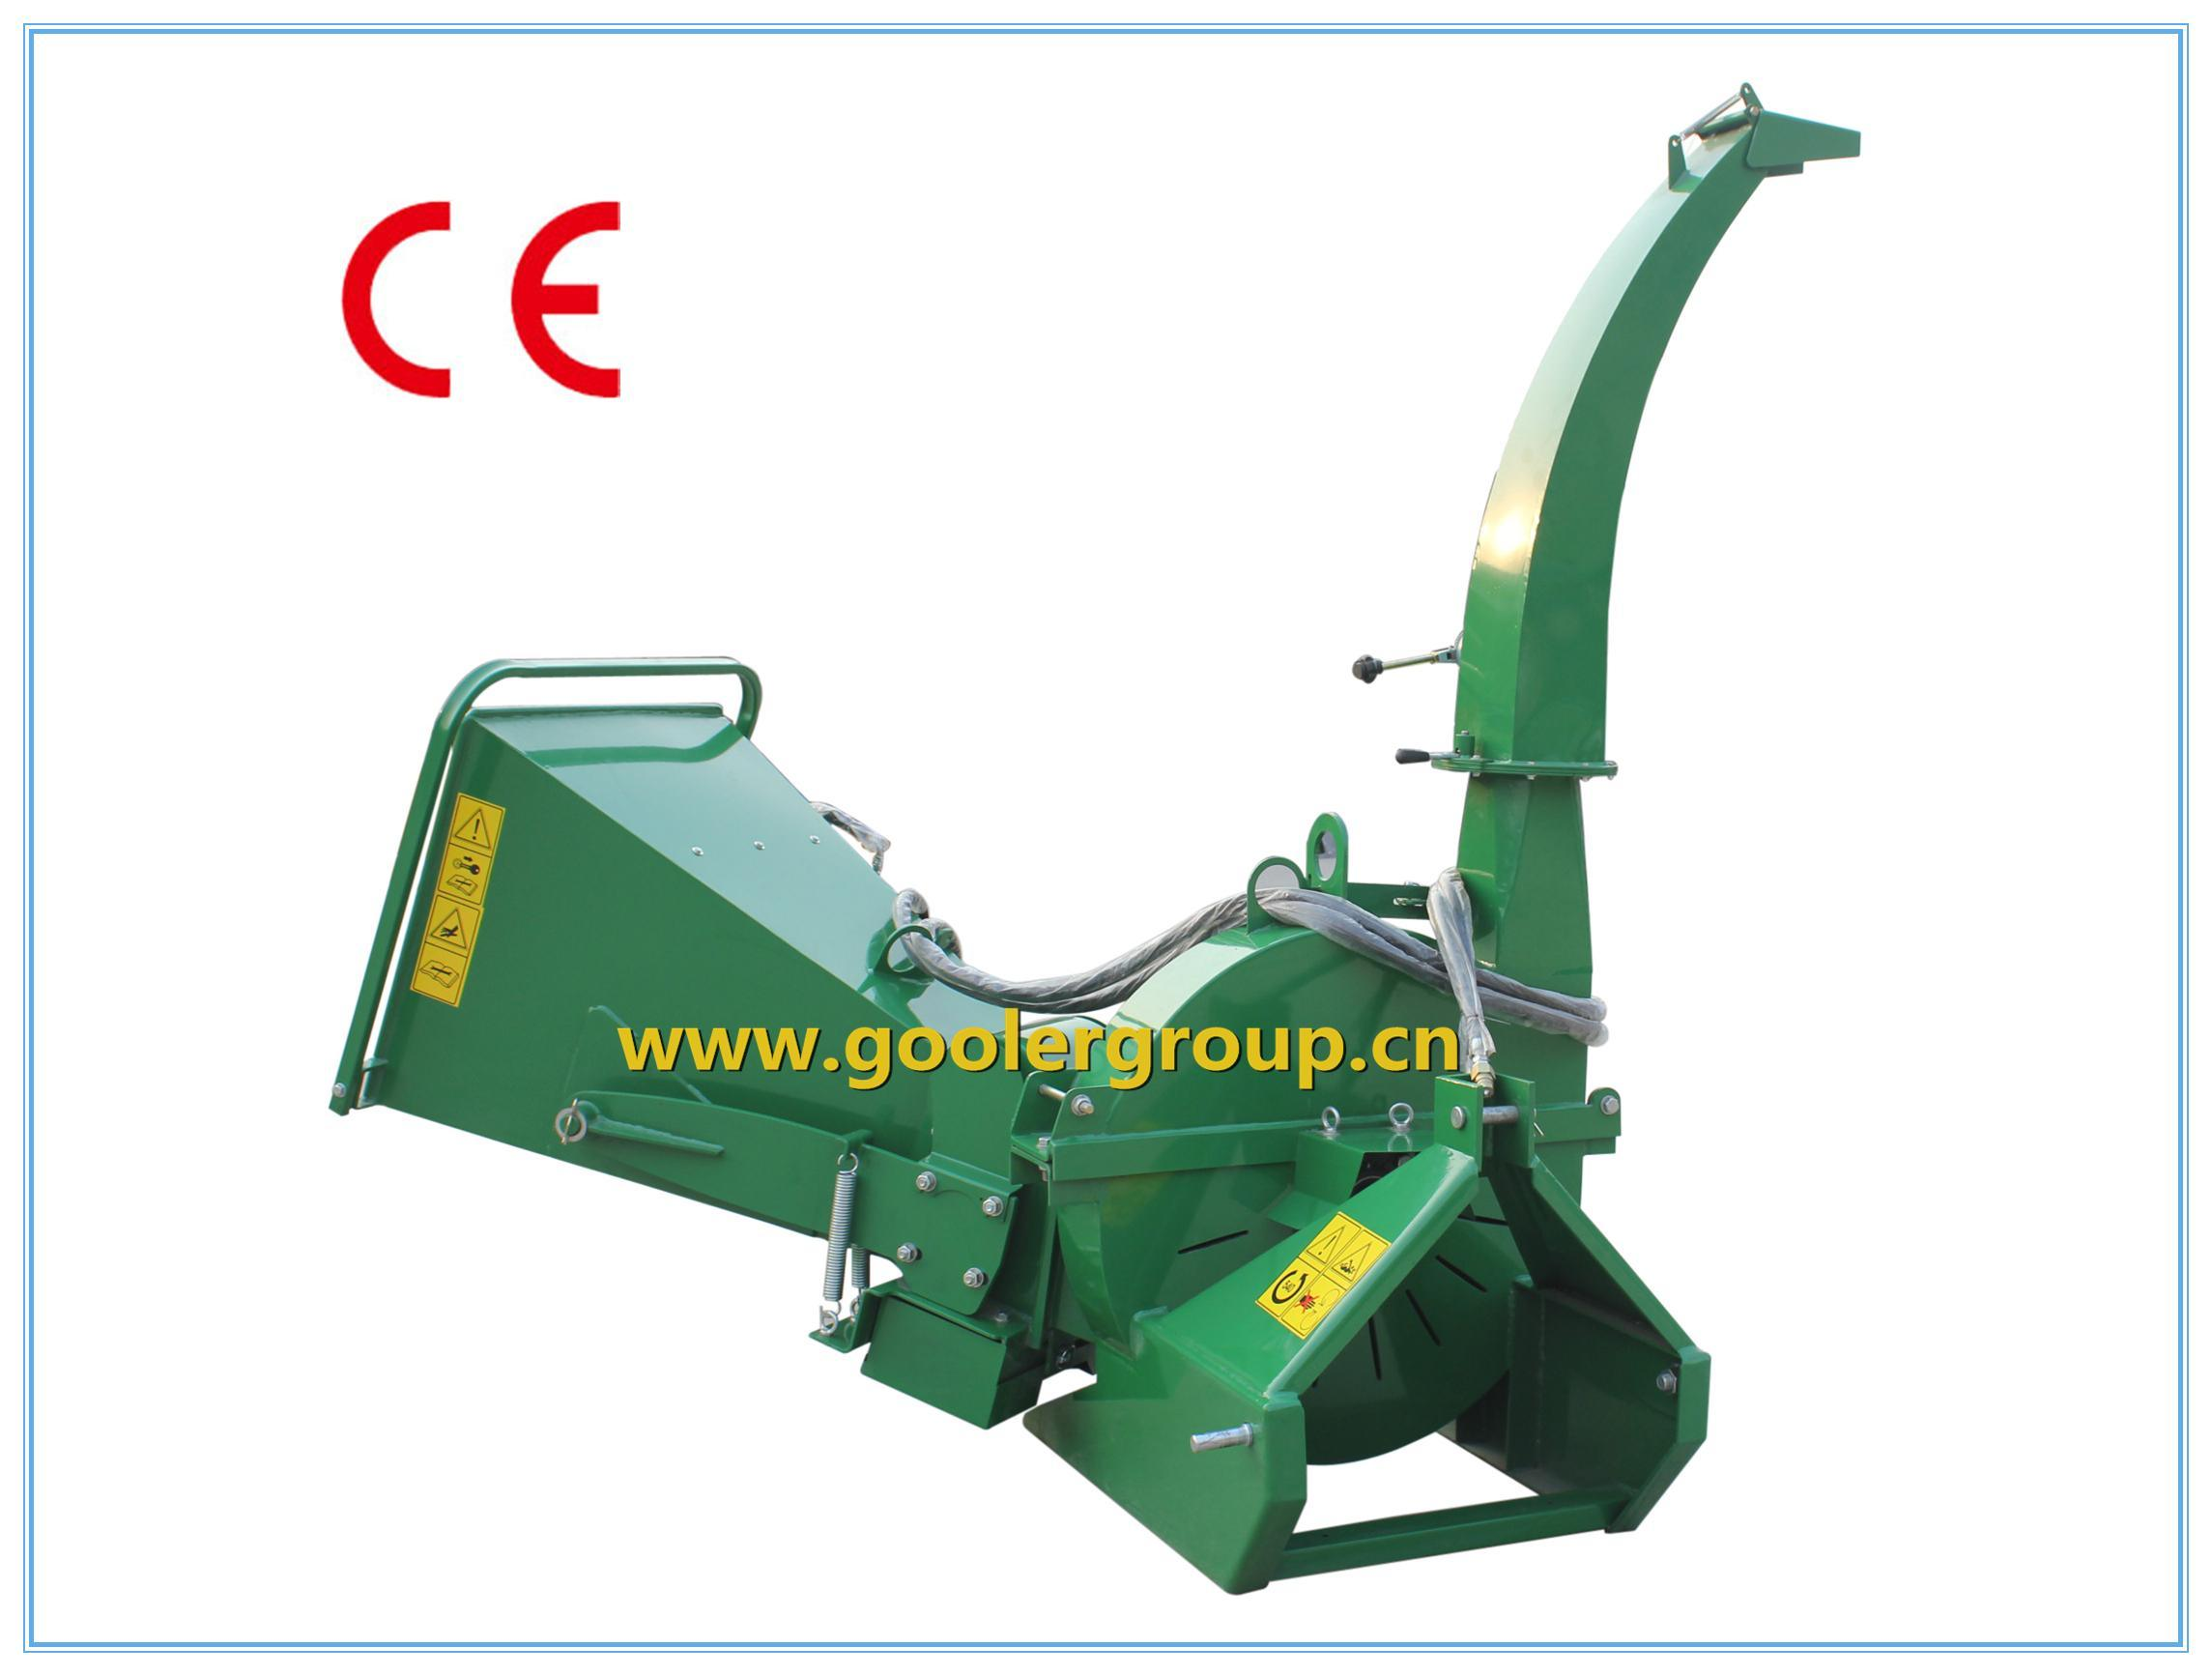 Bx62r Wood Chipper, Tractor Pto Shaft Driven, CE Approval, Double Hydraulic Feeding Rollers